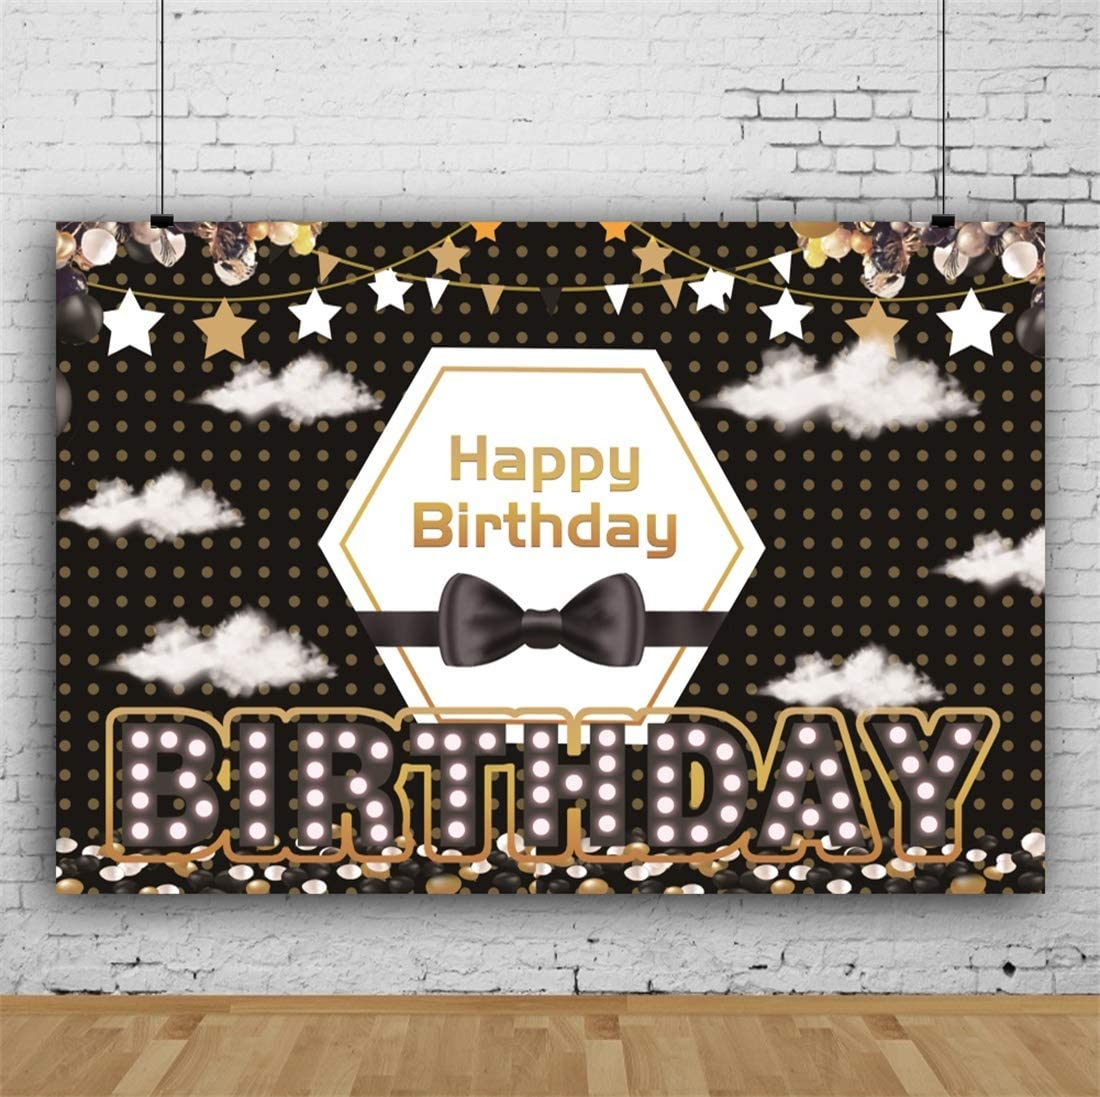 Yeele Birthday 5x3ft Photography Background Birthday Party Decoration Colorful LED Lights Stage Gentleman Bow Hanging Ornament Photo Backdrop Baby Child Portrait Shooting Studio Props Wallpaper